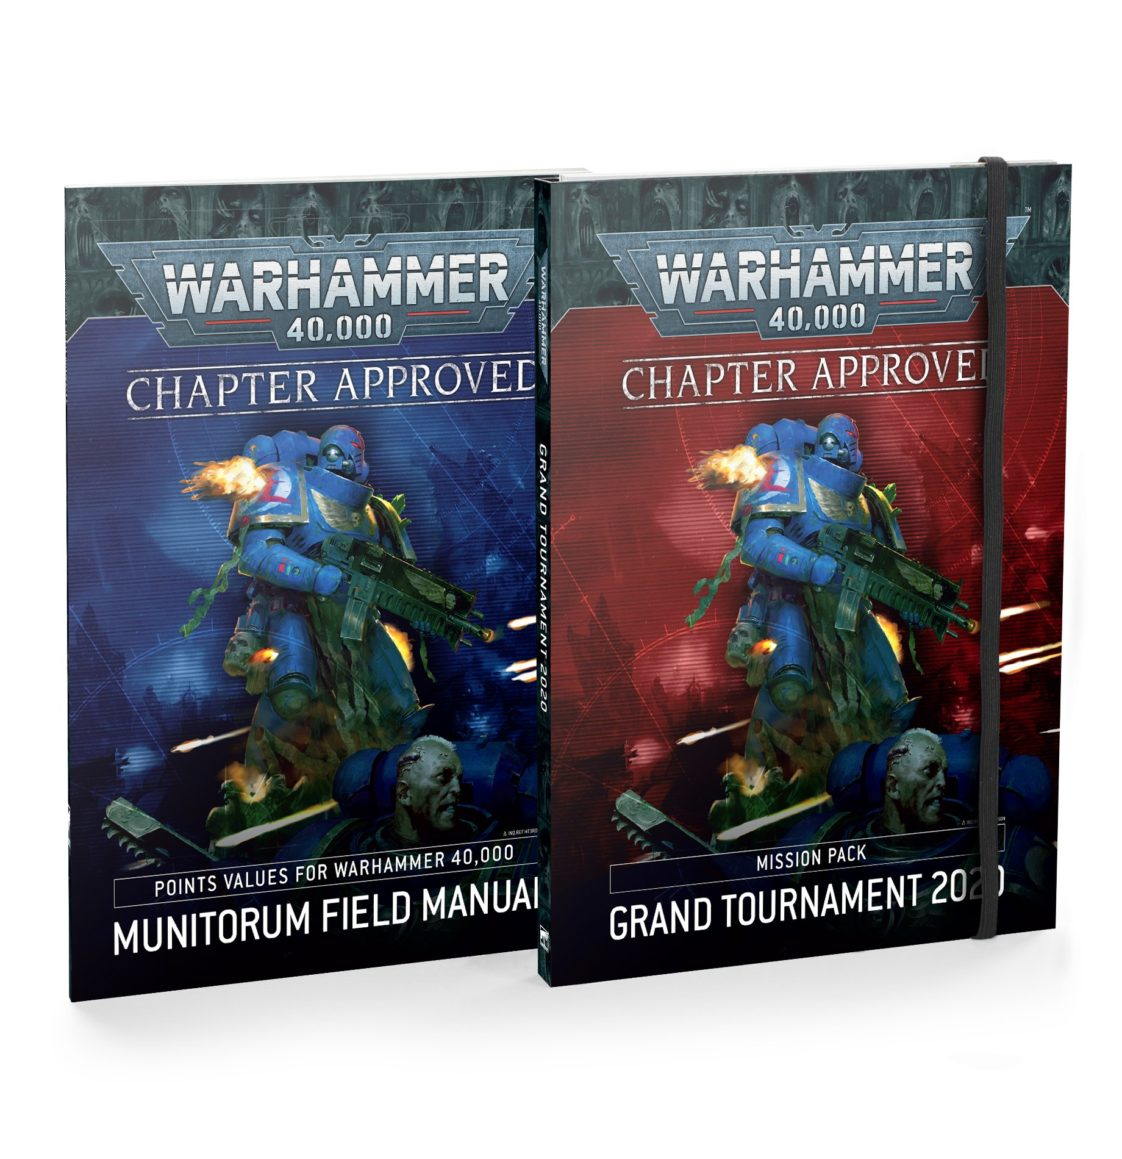 Warhammer 40000: Chapter Approved - Grand Tournament 2020 Mission Pack and Munitorum Field Manual (English)